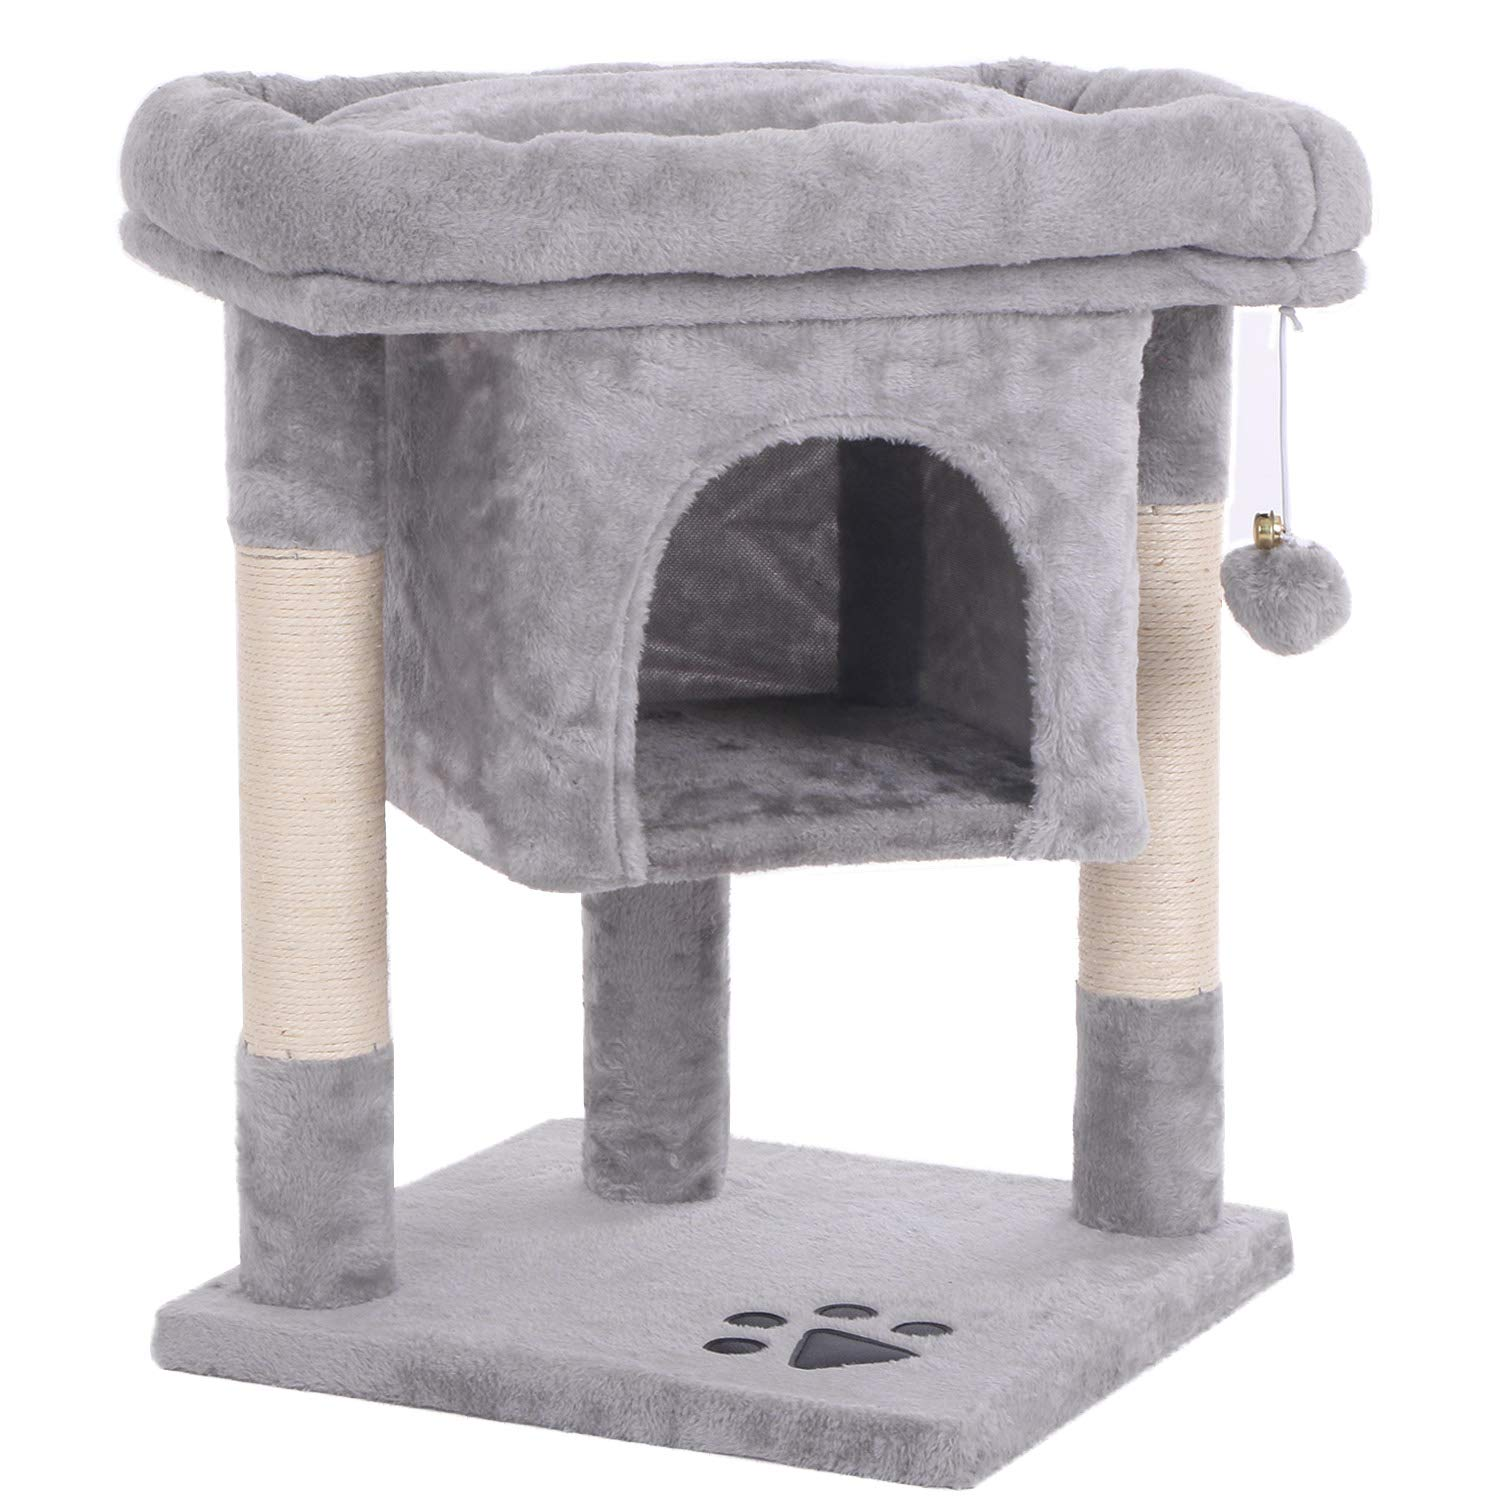 BEWISHOME Cat Tree Cat House Cat Condo with Sisal Scratching Posts, Plush Perch, Cat Tower Furniture Cat Bed Kitty…